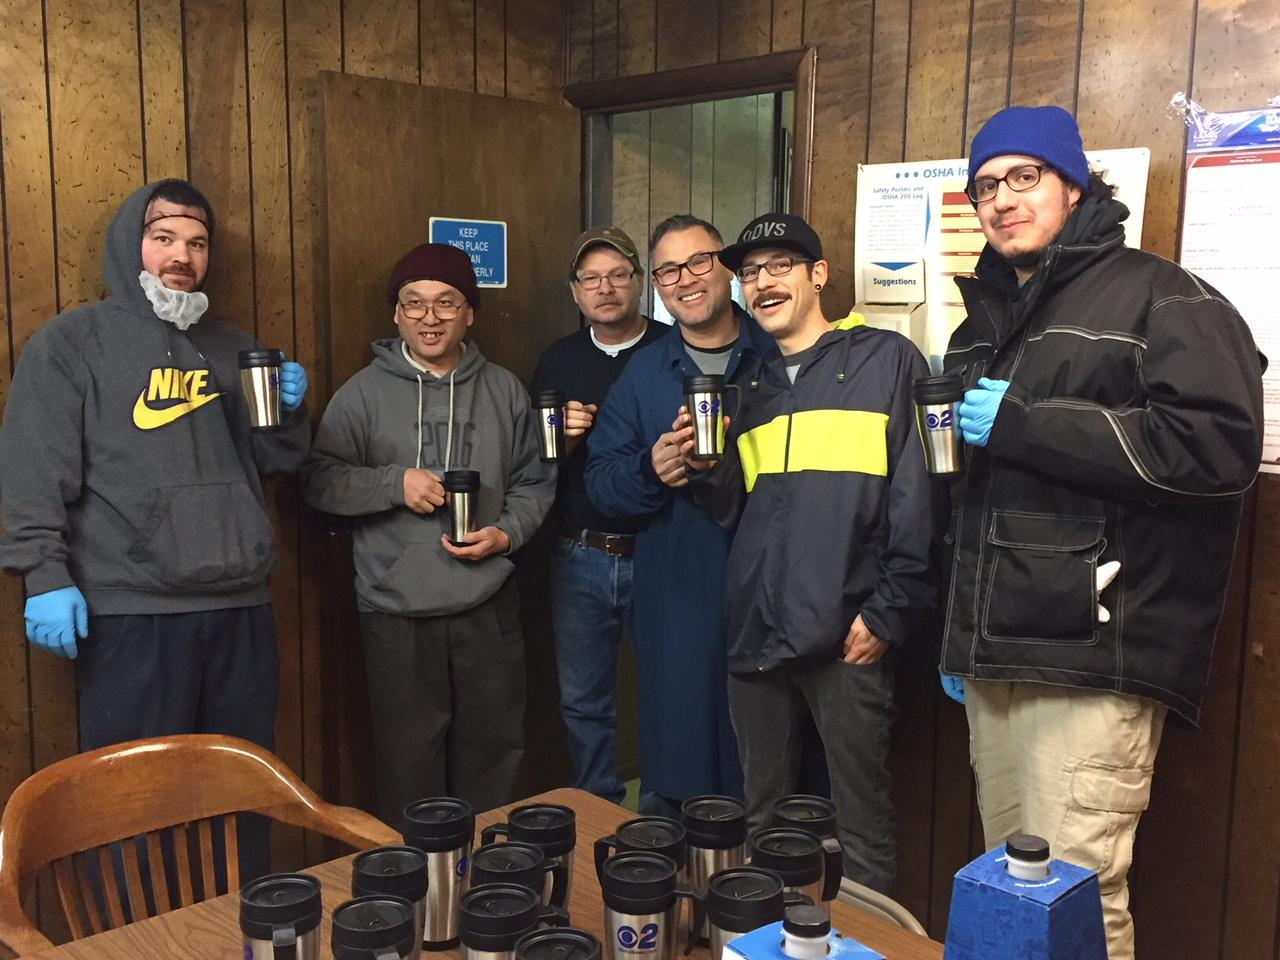 Mugshot Mondays: This week's winner is Ocean Beauty Seafoods in Boise! We helped deliver free Dutch Bros. Coffee and KBOI mugs! Want your business to be next? Enter: http://bit.ly/1UoKo3X